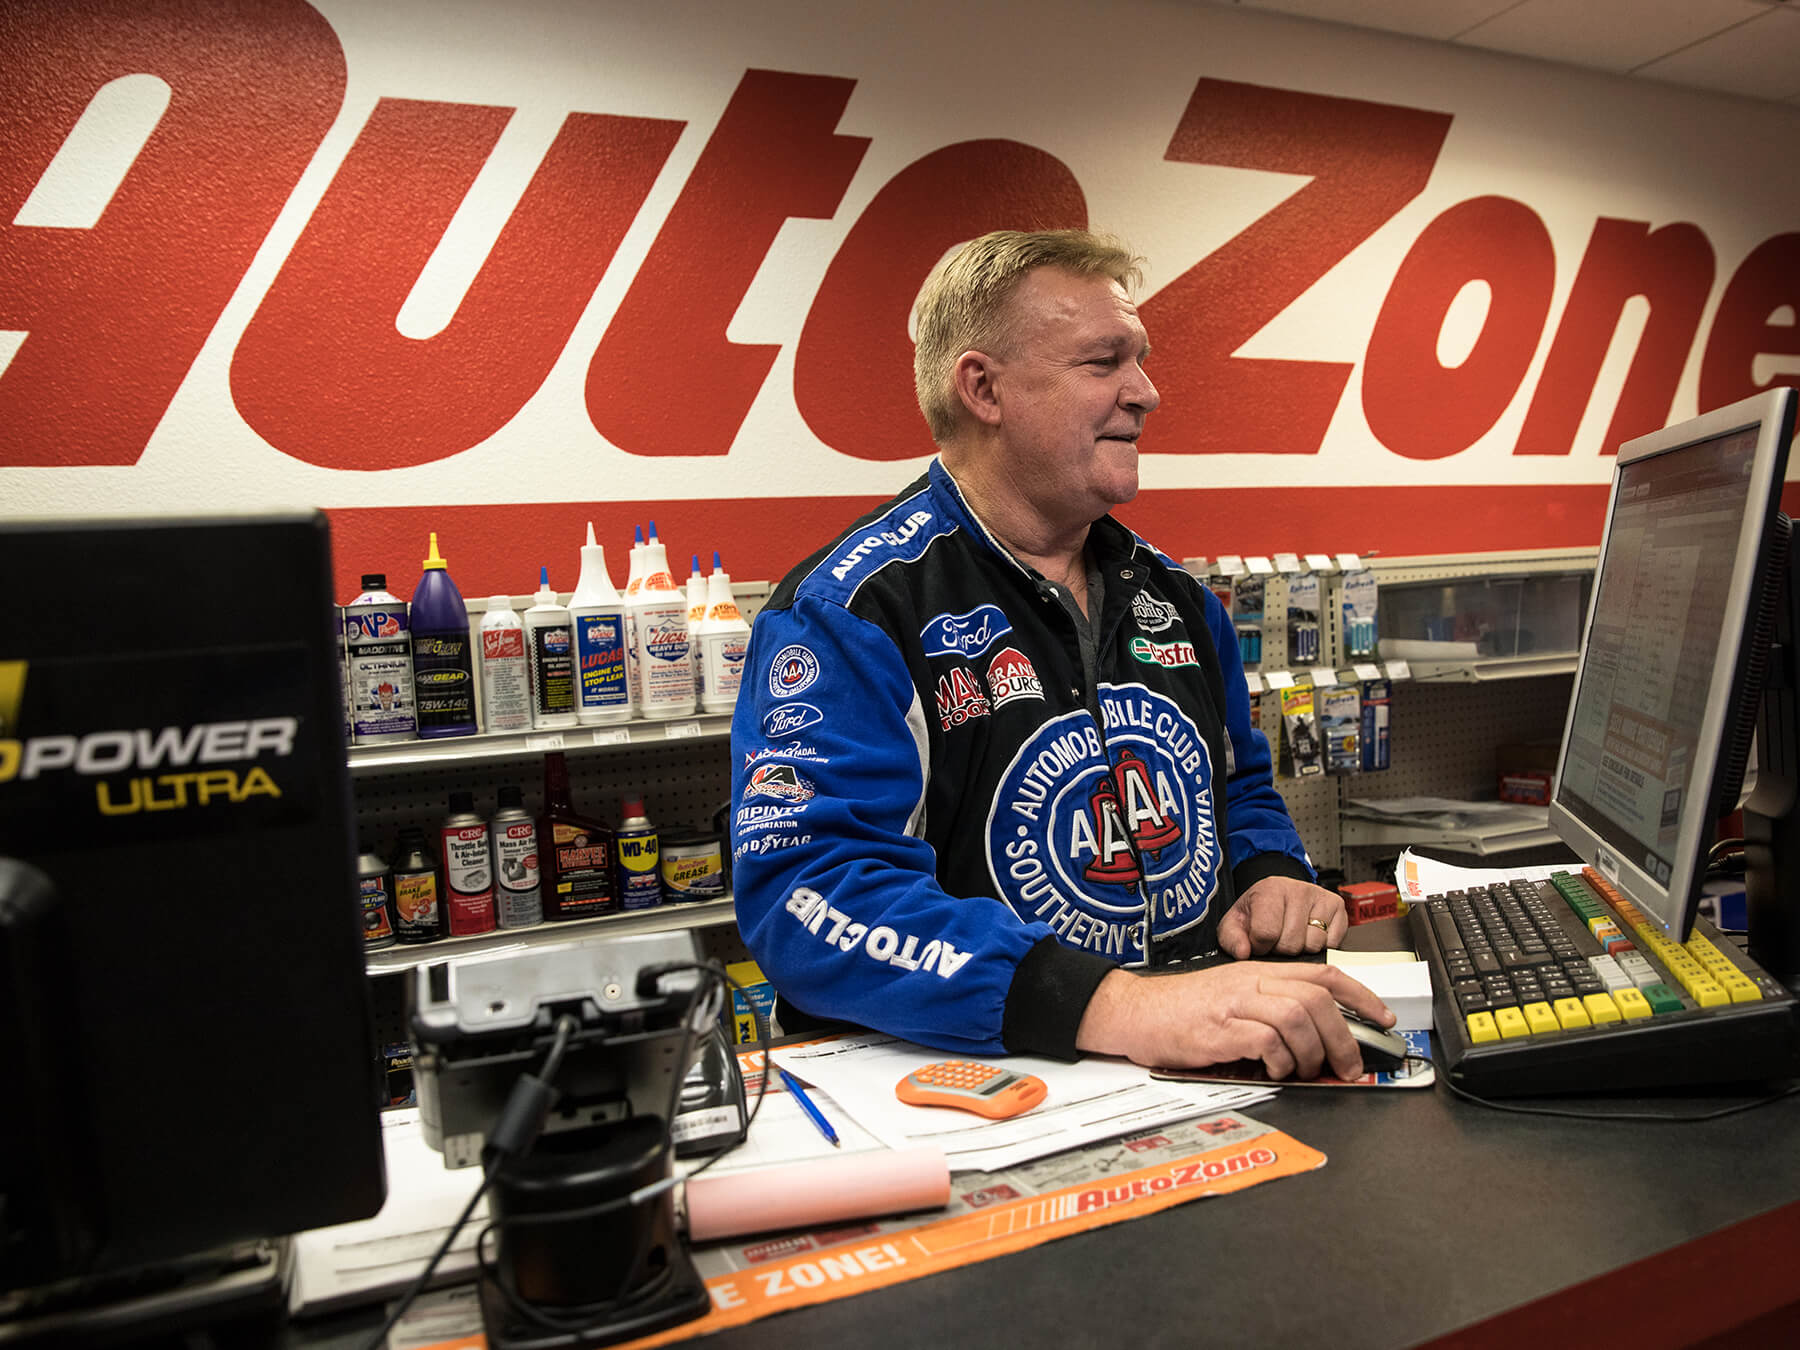 Interior photo of the AutoZone shop at Sacramento campus